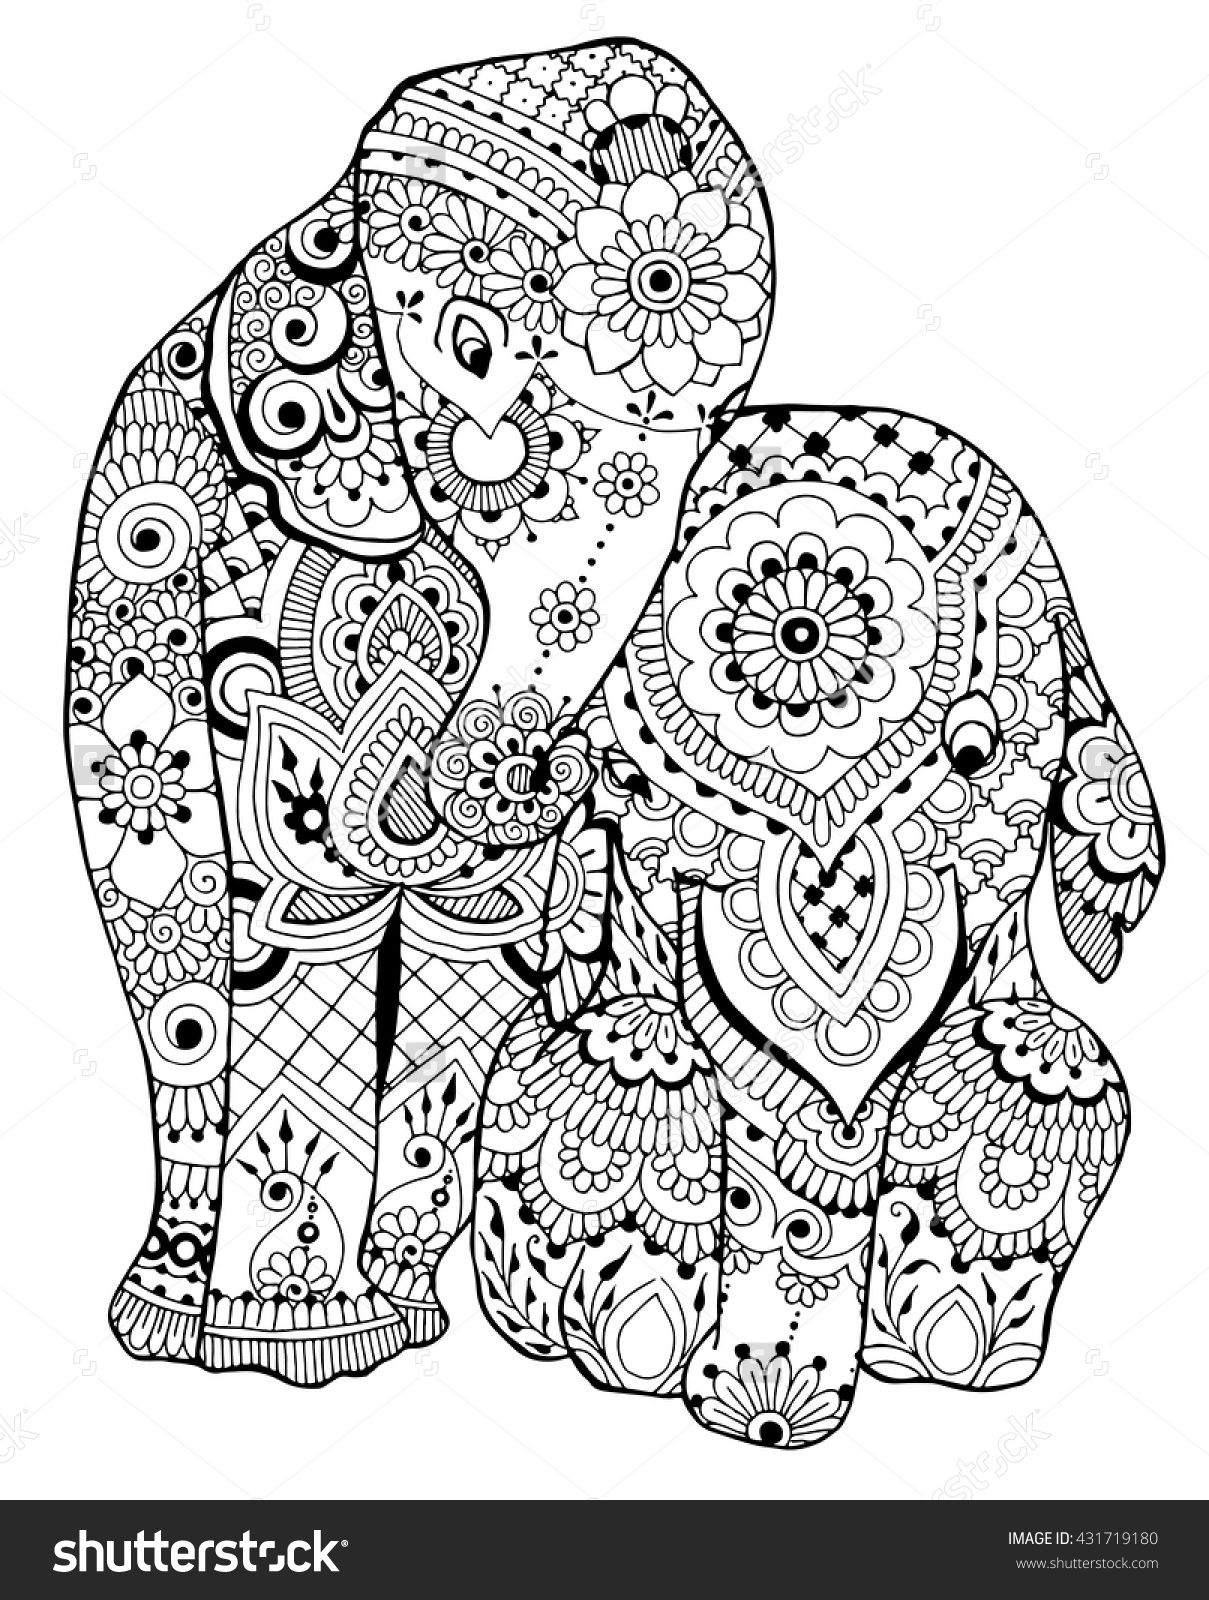 Free zentangle elephant coloring pages ~ Elephants coloring page I 431719180 : Shutterstock | Adult ...